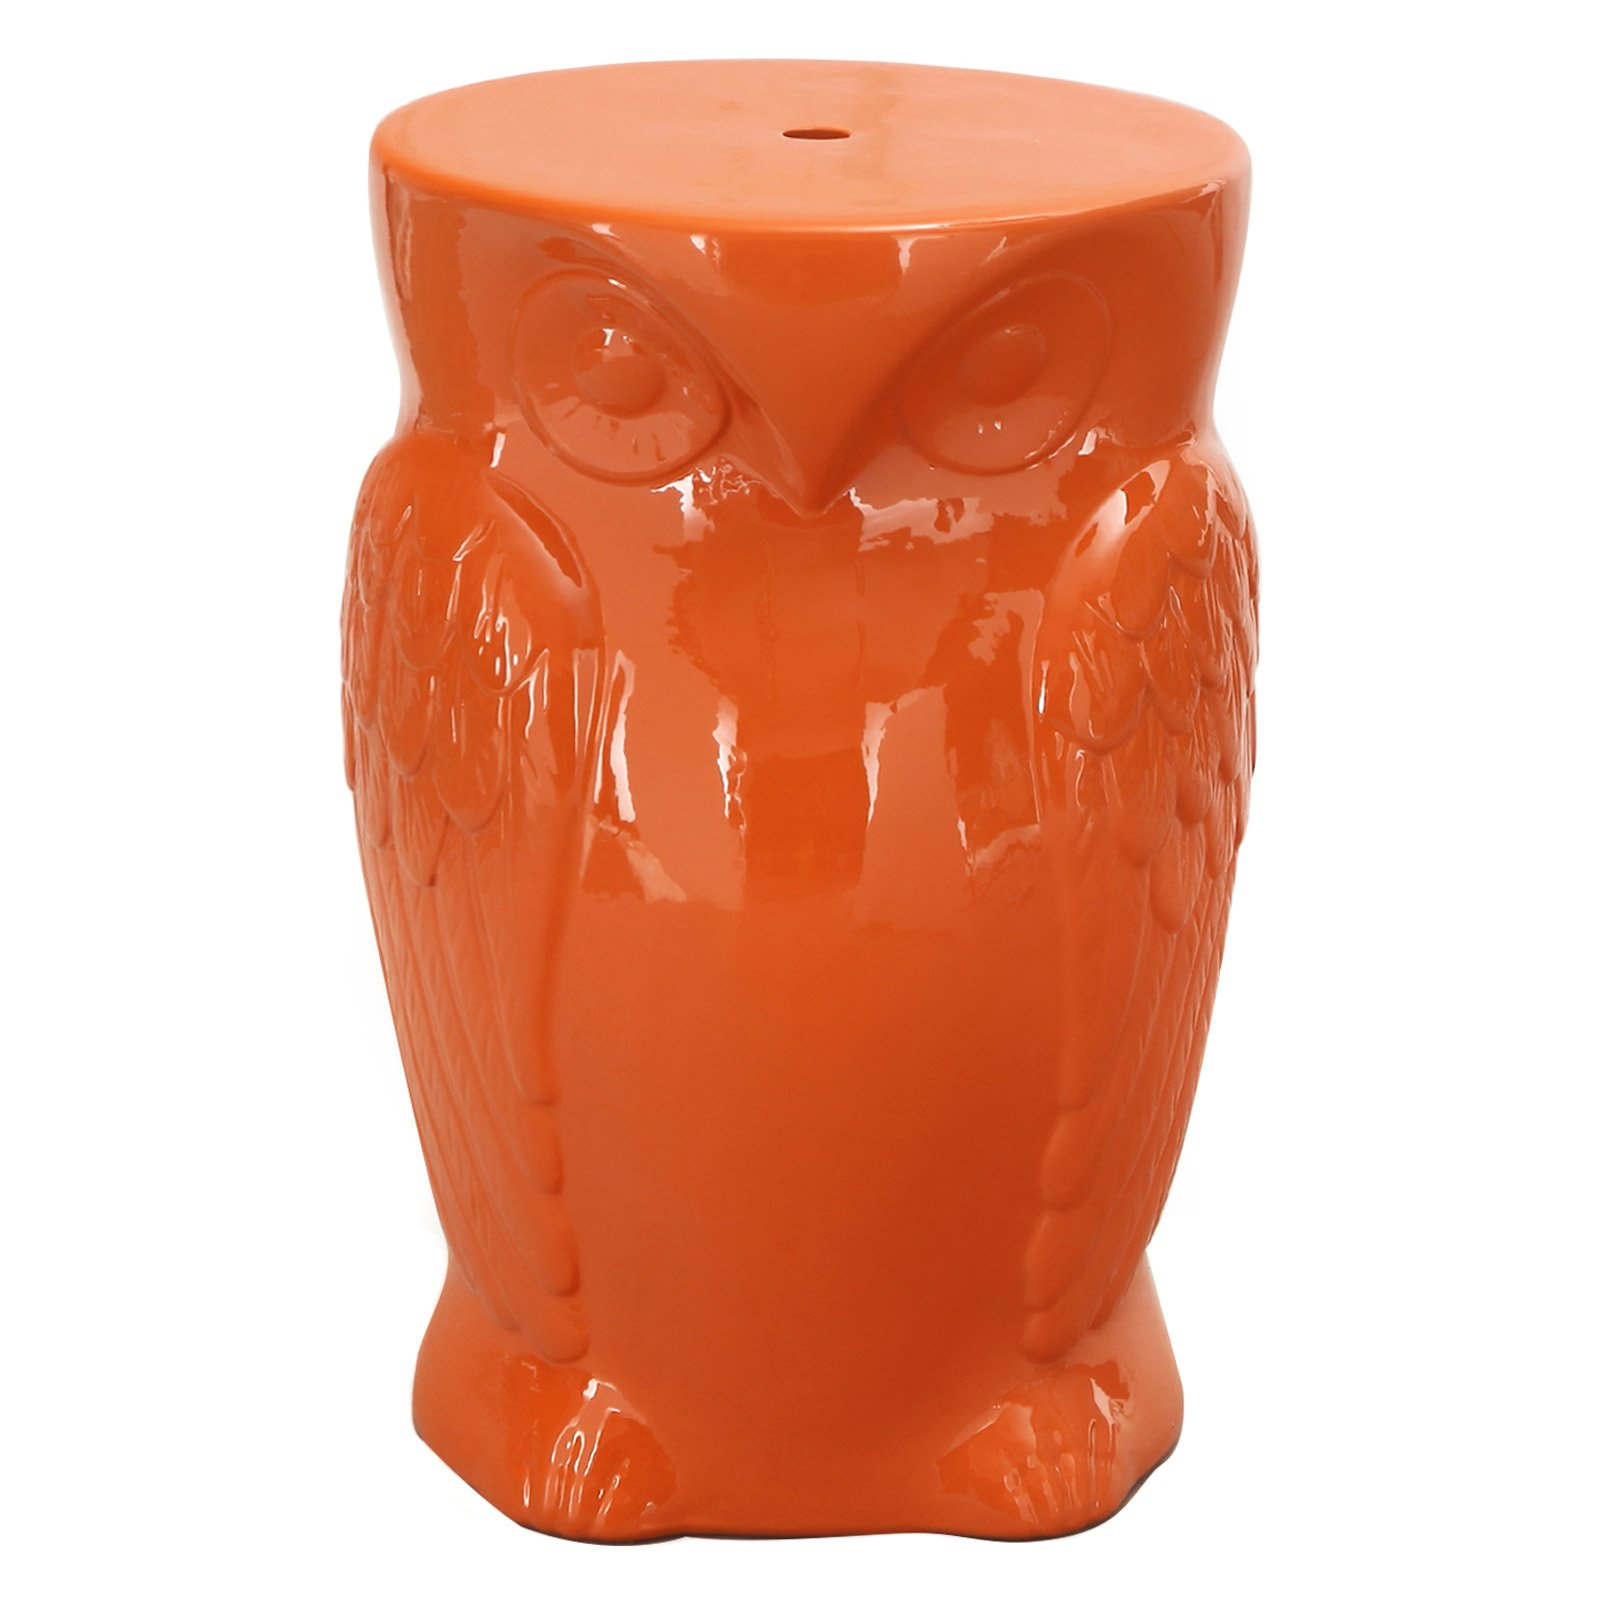 Adeco Trading Wise Old Owl Garden Stool